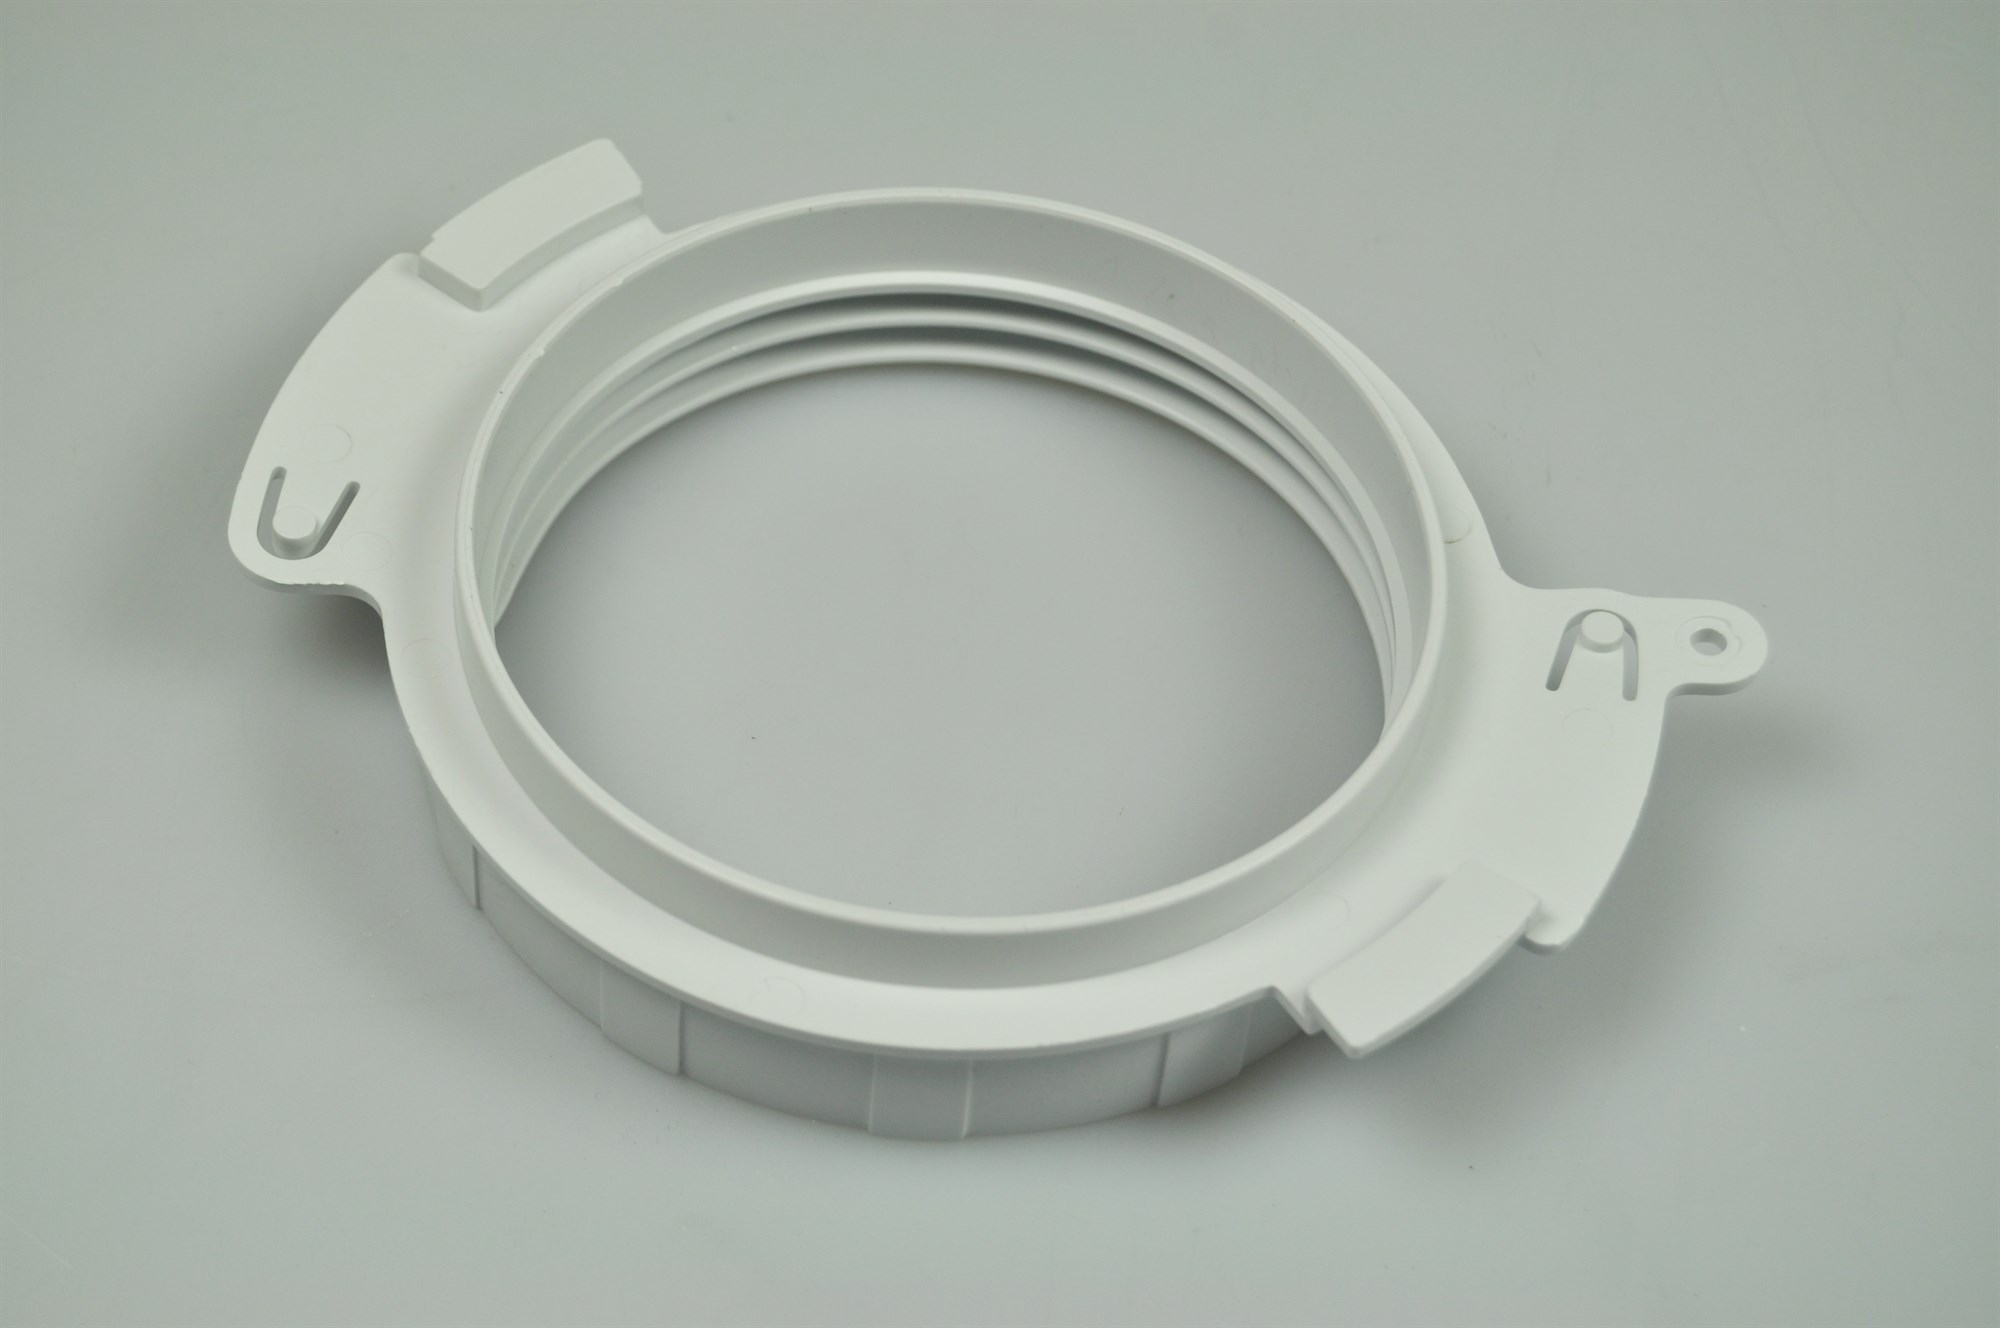 & Vent hose adapter Indesit tumble dryer